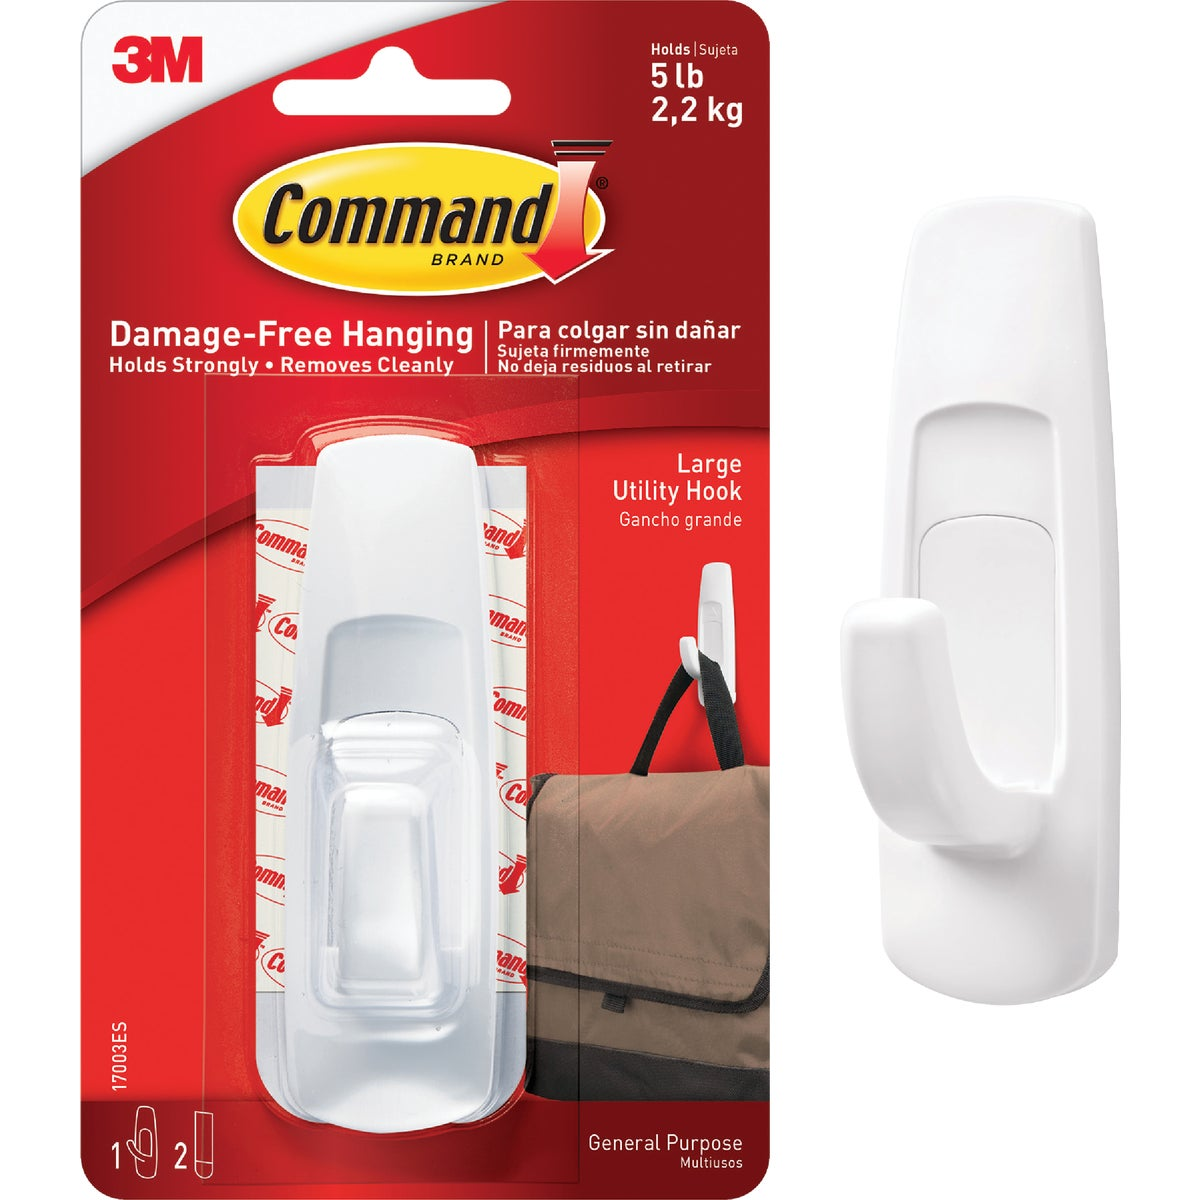 COMMAND LRG UTILITY HOOK - 17003 by 3m Co